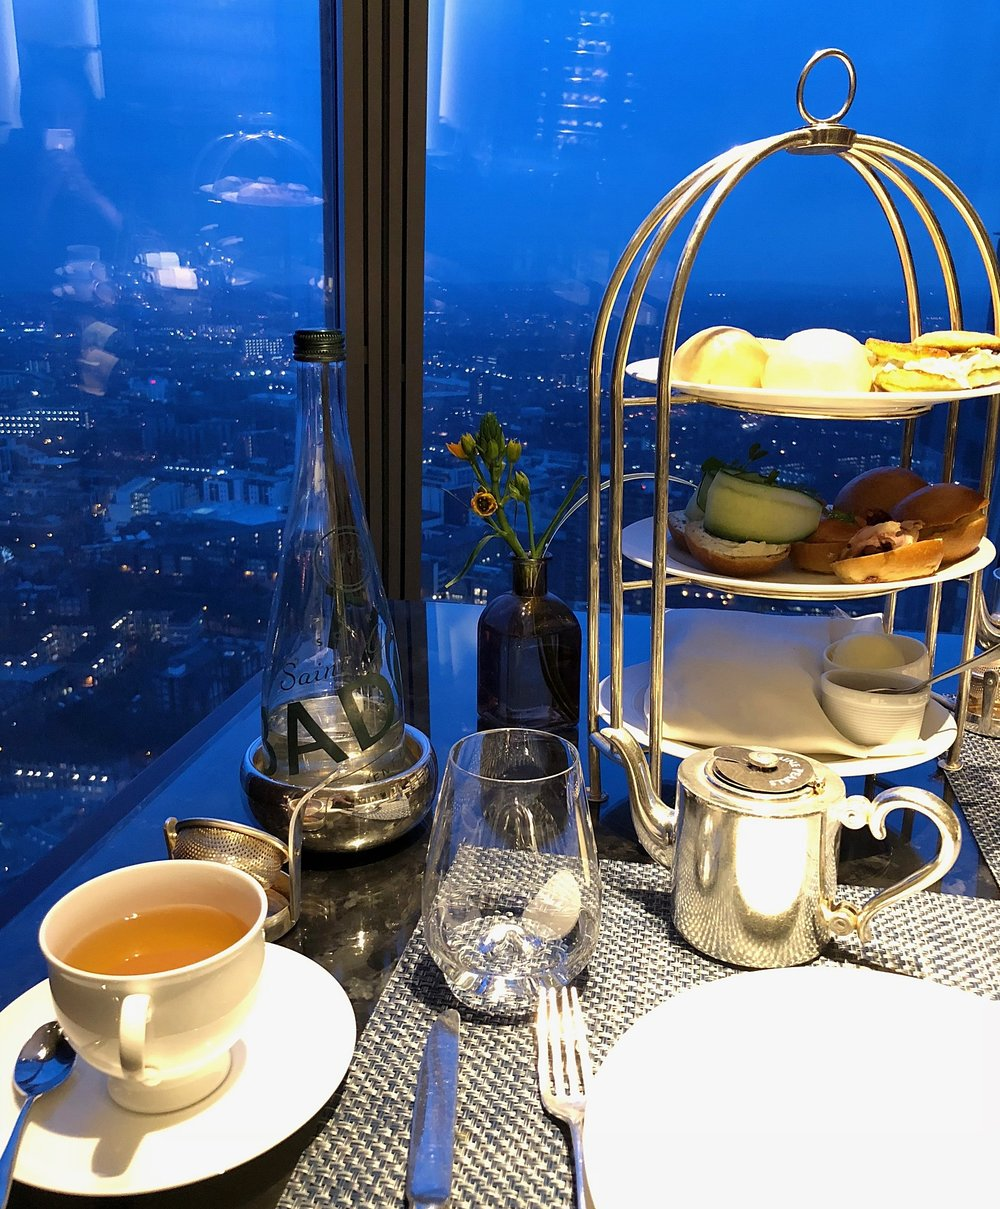 Ting  for Tea on the 35th floor of the Shard